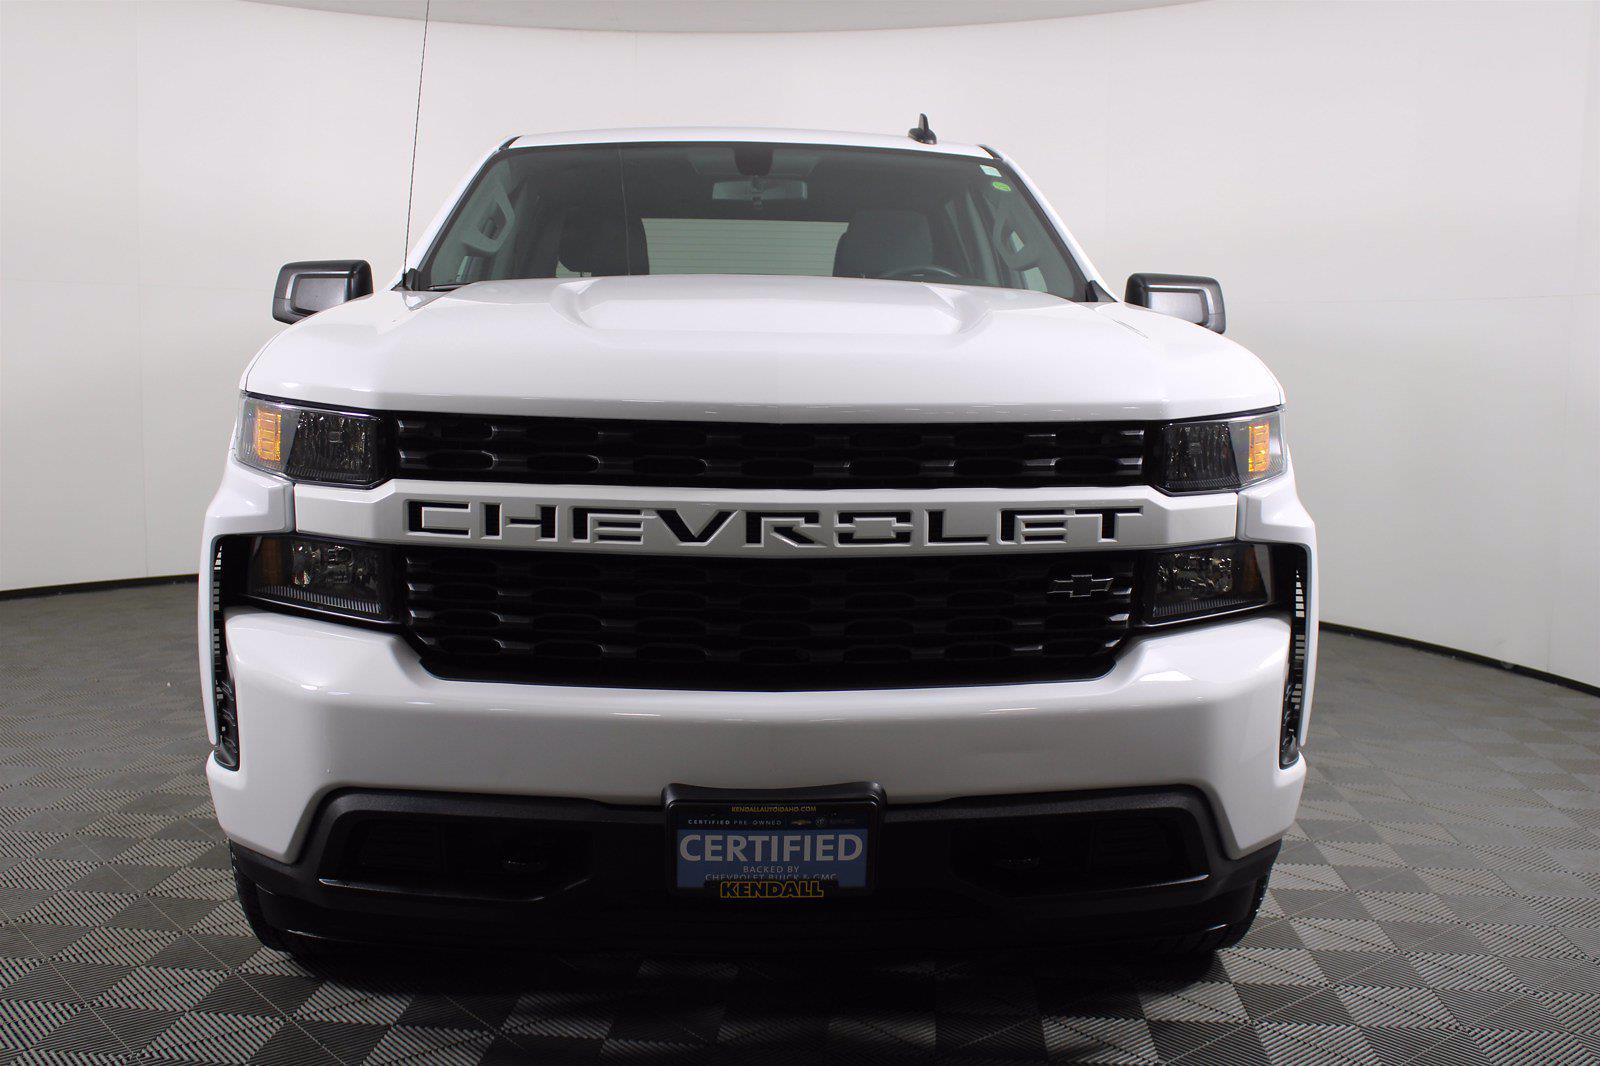 2020 Chevrolet Silverado 1500 Crew Cab 4x2, Pickup #DTC1616 - photo 1